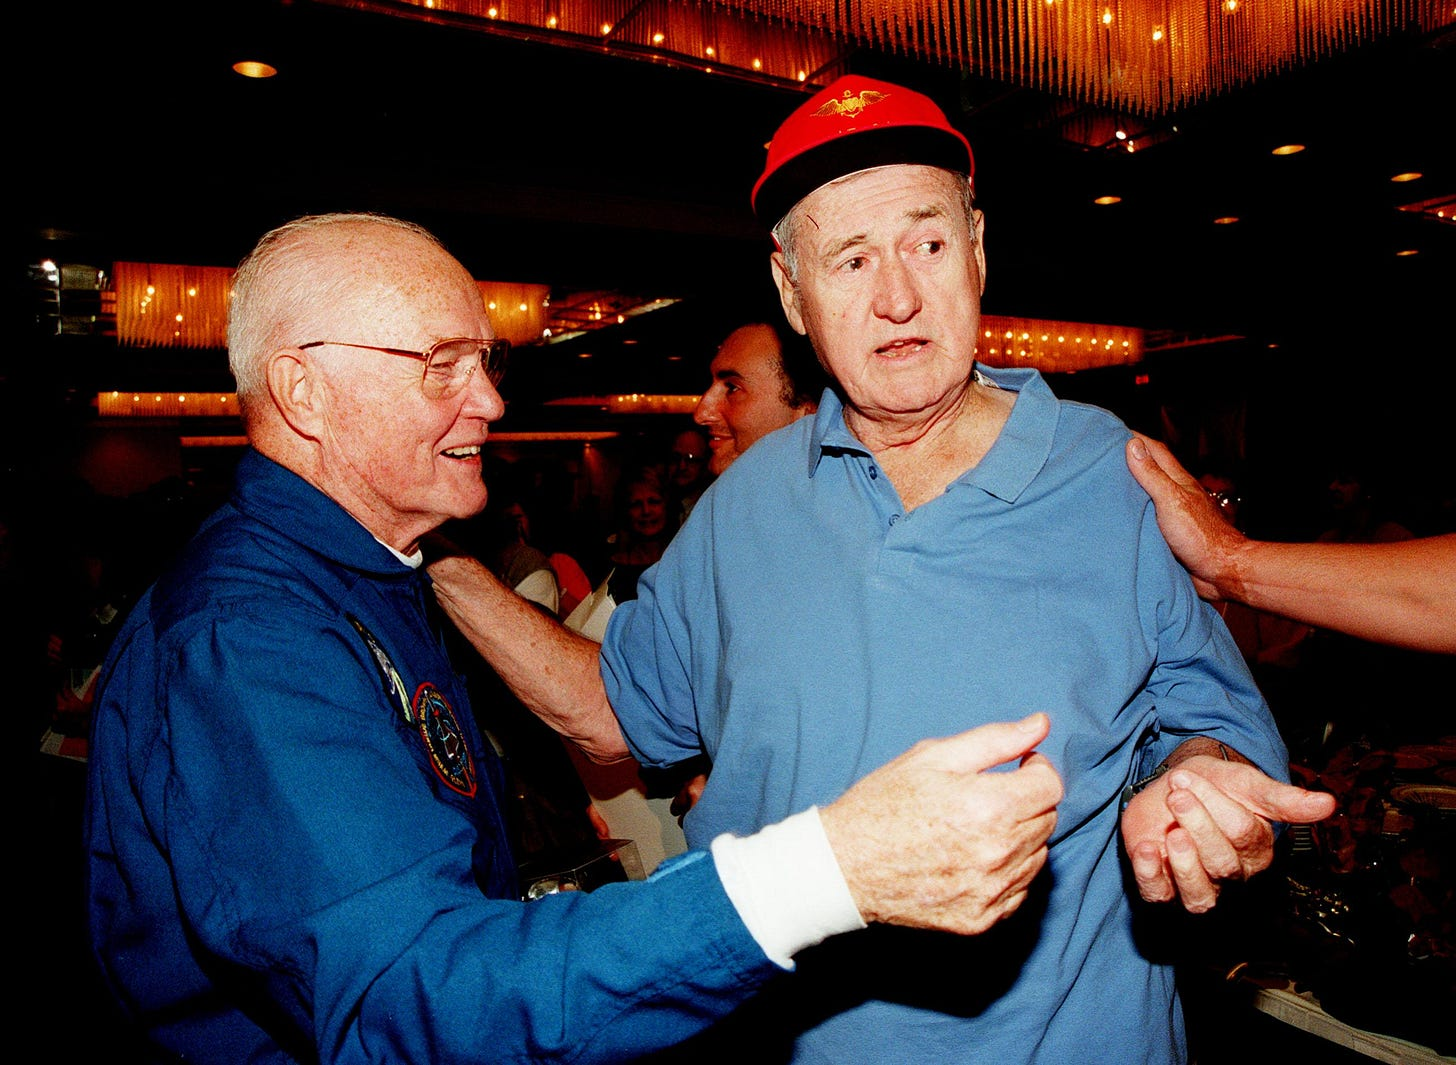 Ted_Williams_and_John_Glenn_1998.jpg